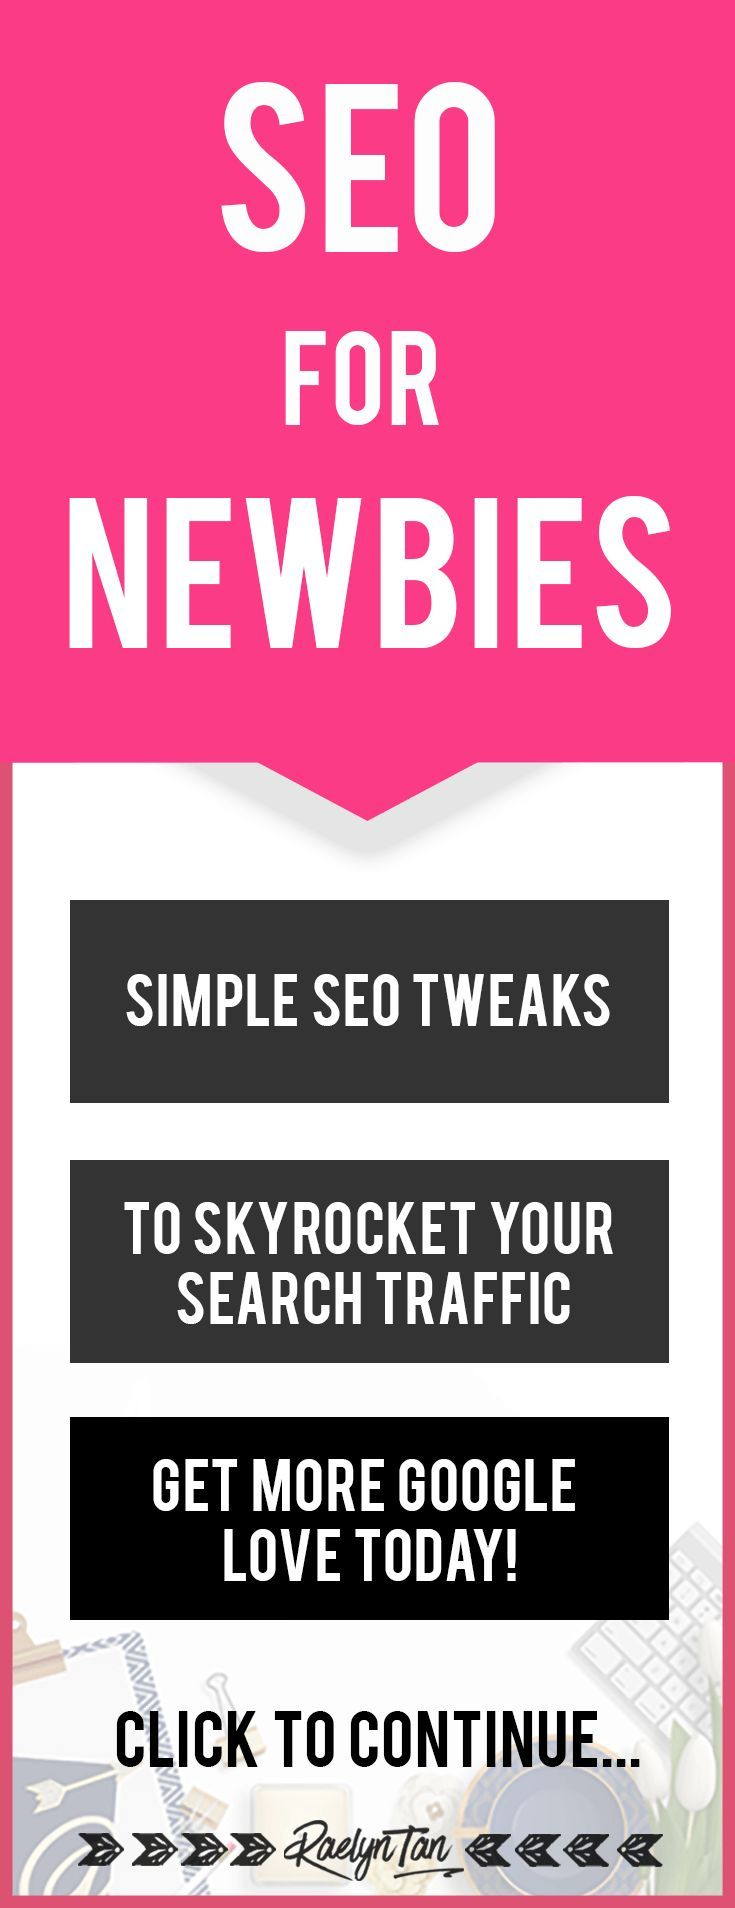 SEO Tips For Beginners: Search engine optimization tips for your website to get organic traffic, perfect for newbie bloggers.